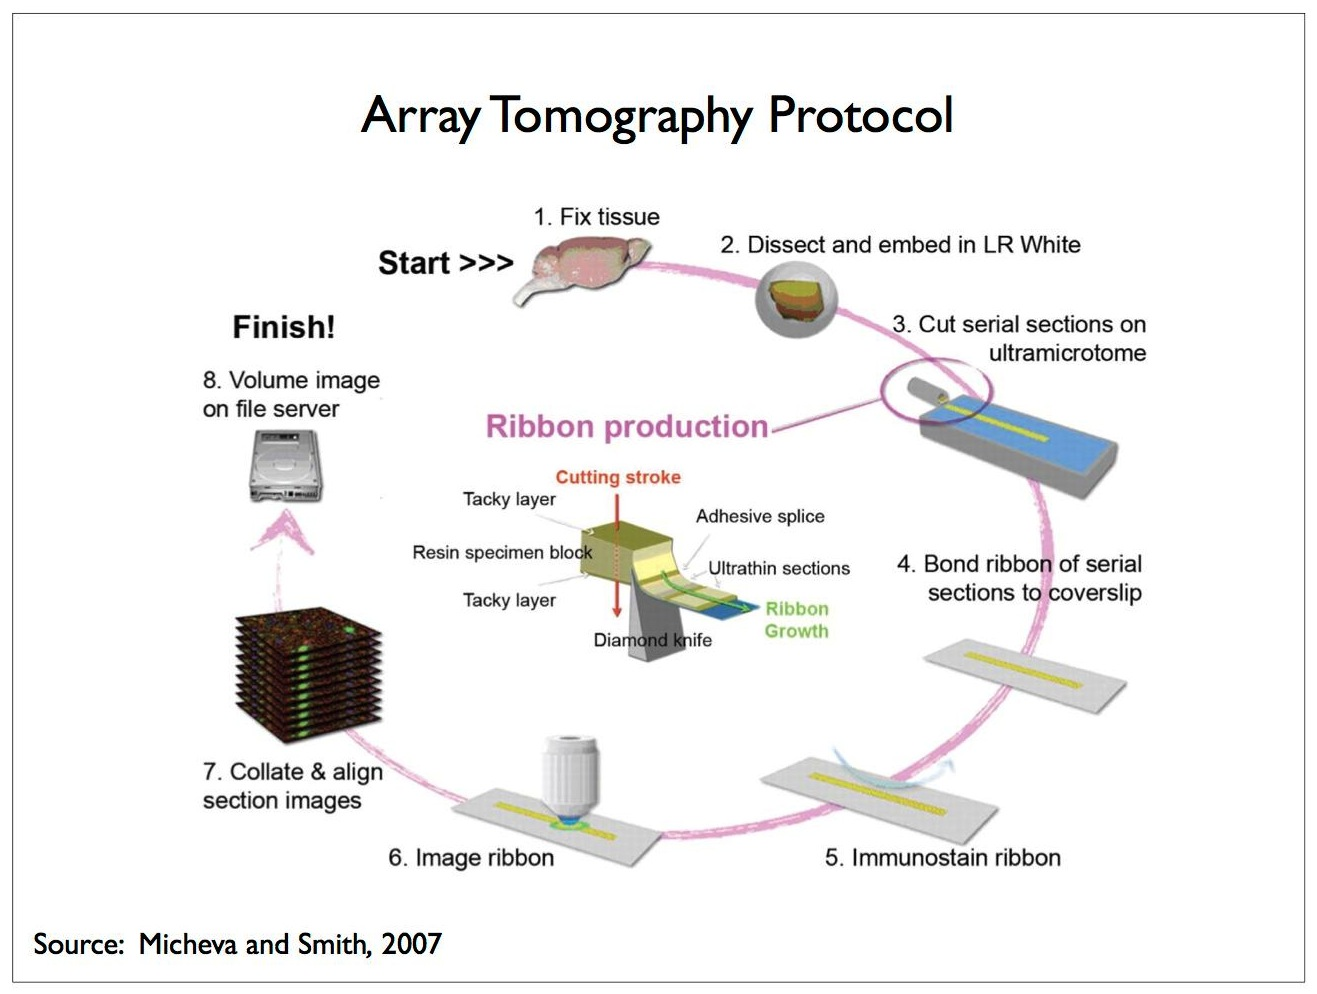 Let's consider the protocol involved in array-tomography immunofluorescence